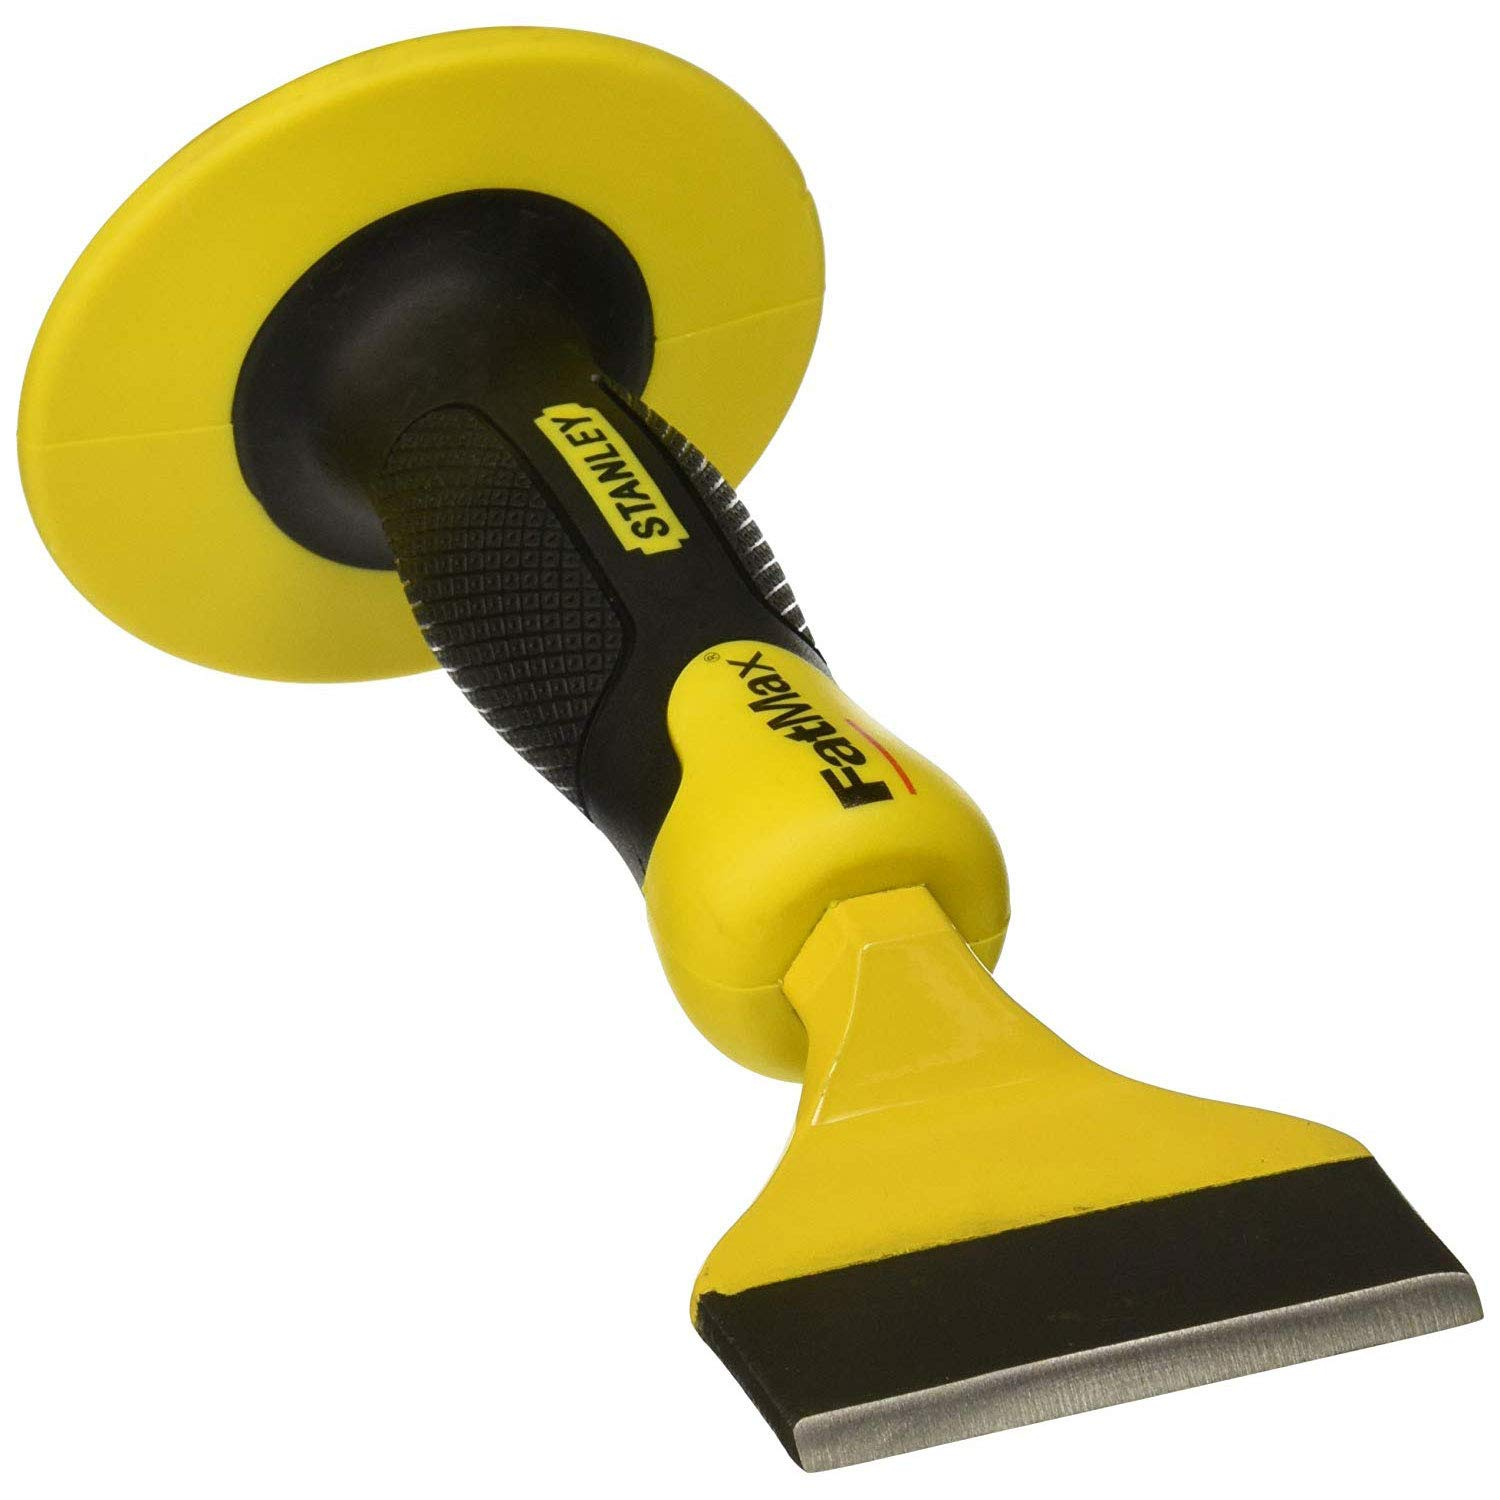 Stanley 16-327 3-Inch X 8-1/2-Inch FatMax Brick Sets with Bi-Material Handle Guard